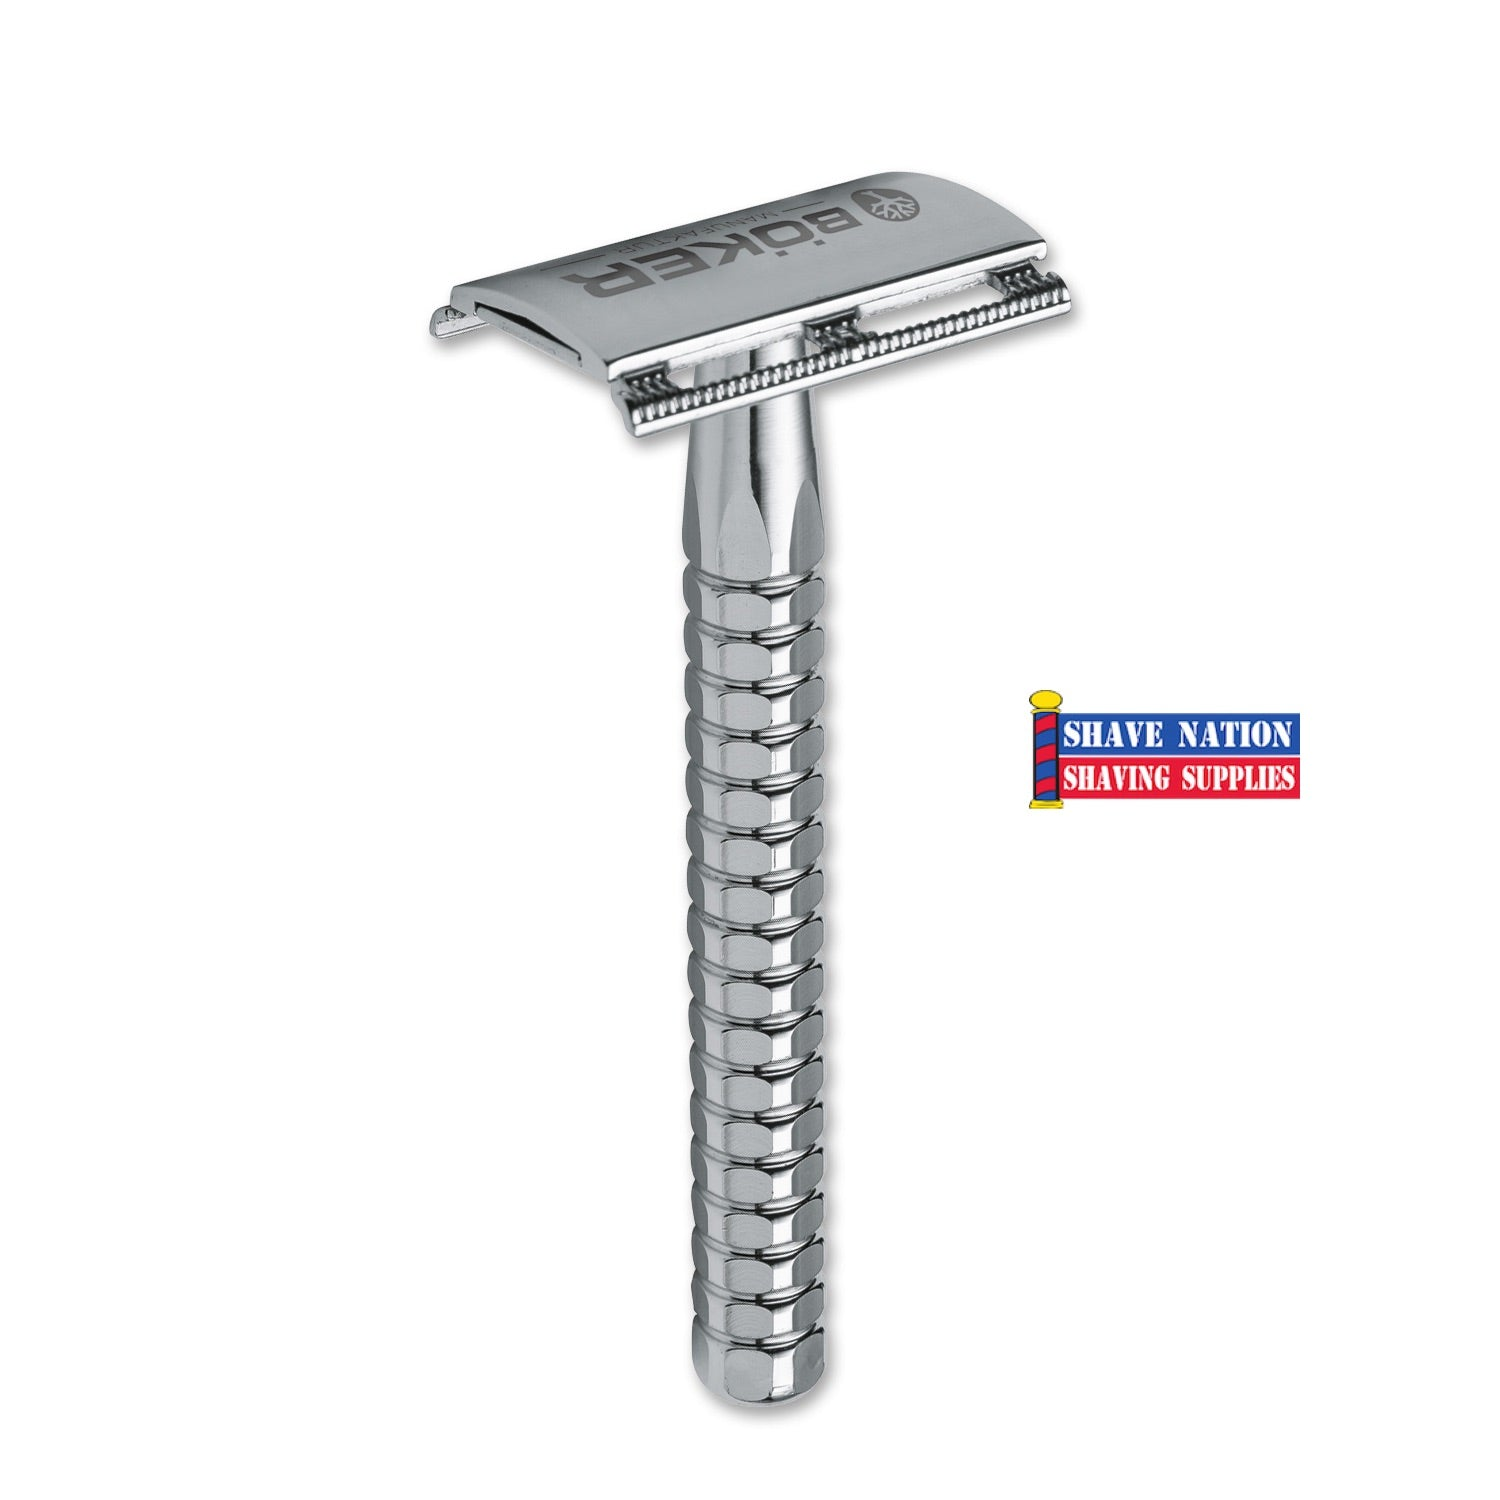 Boker Low Profile Closed Comb Safety Razor